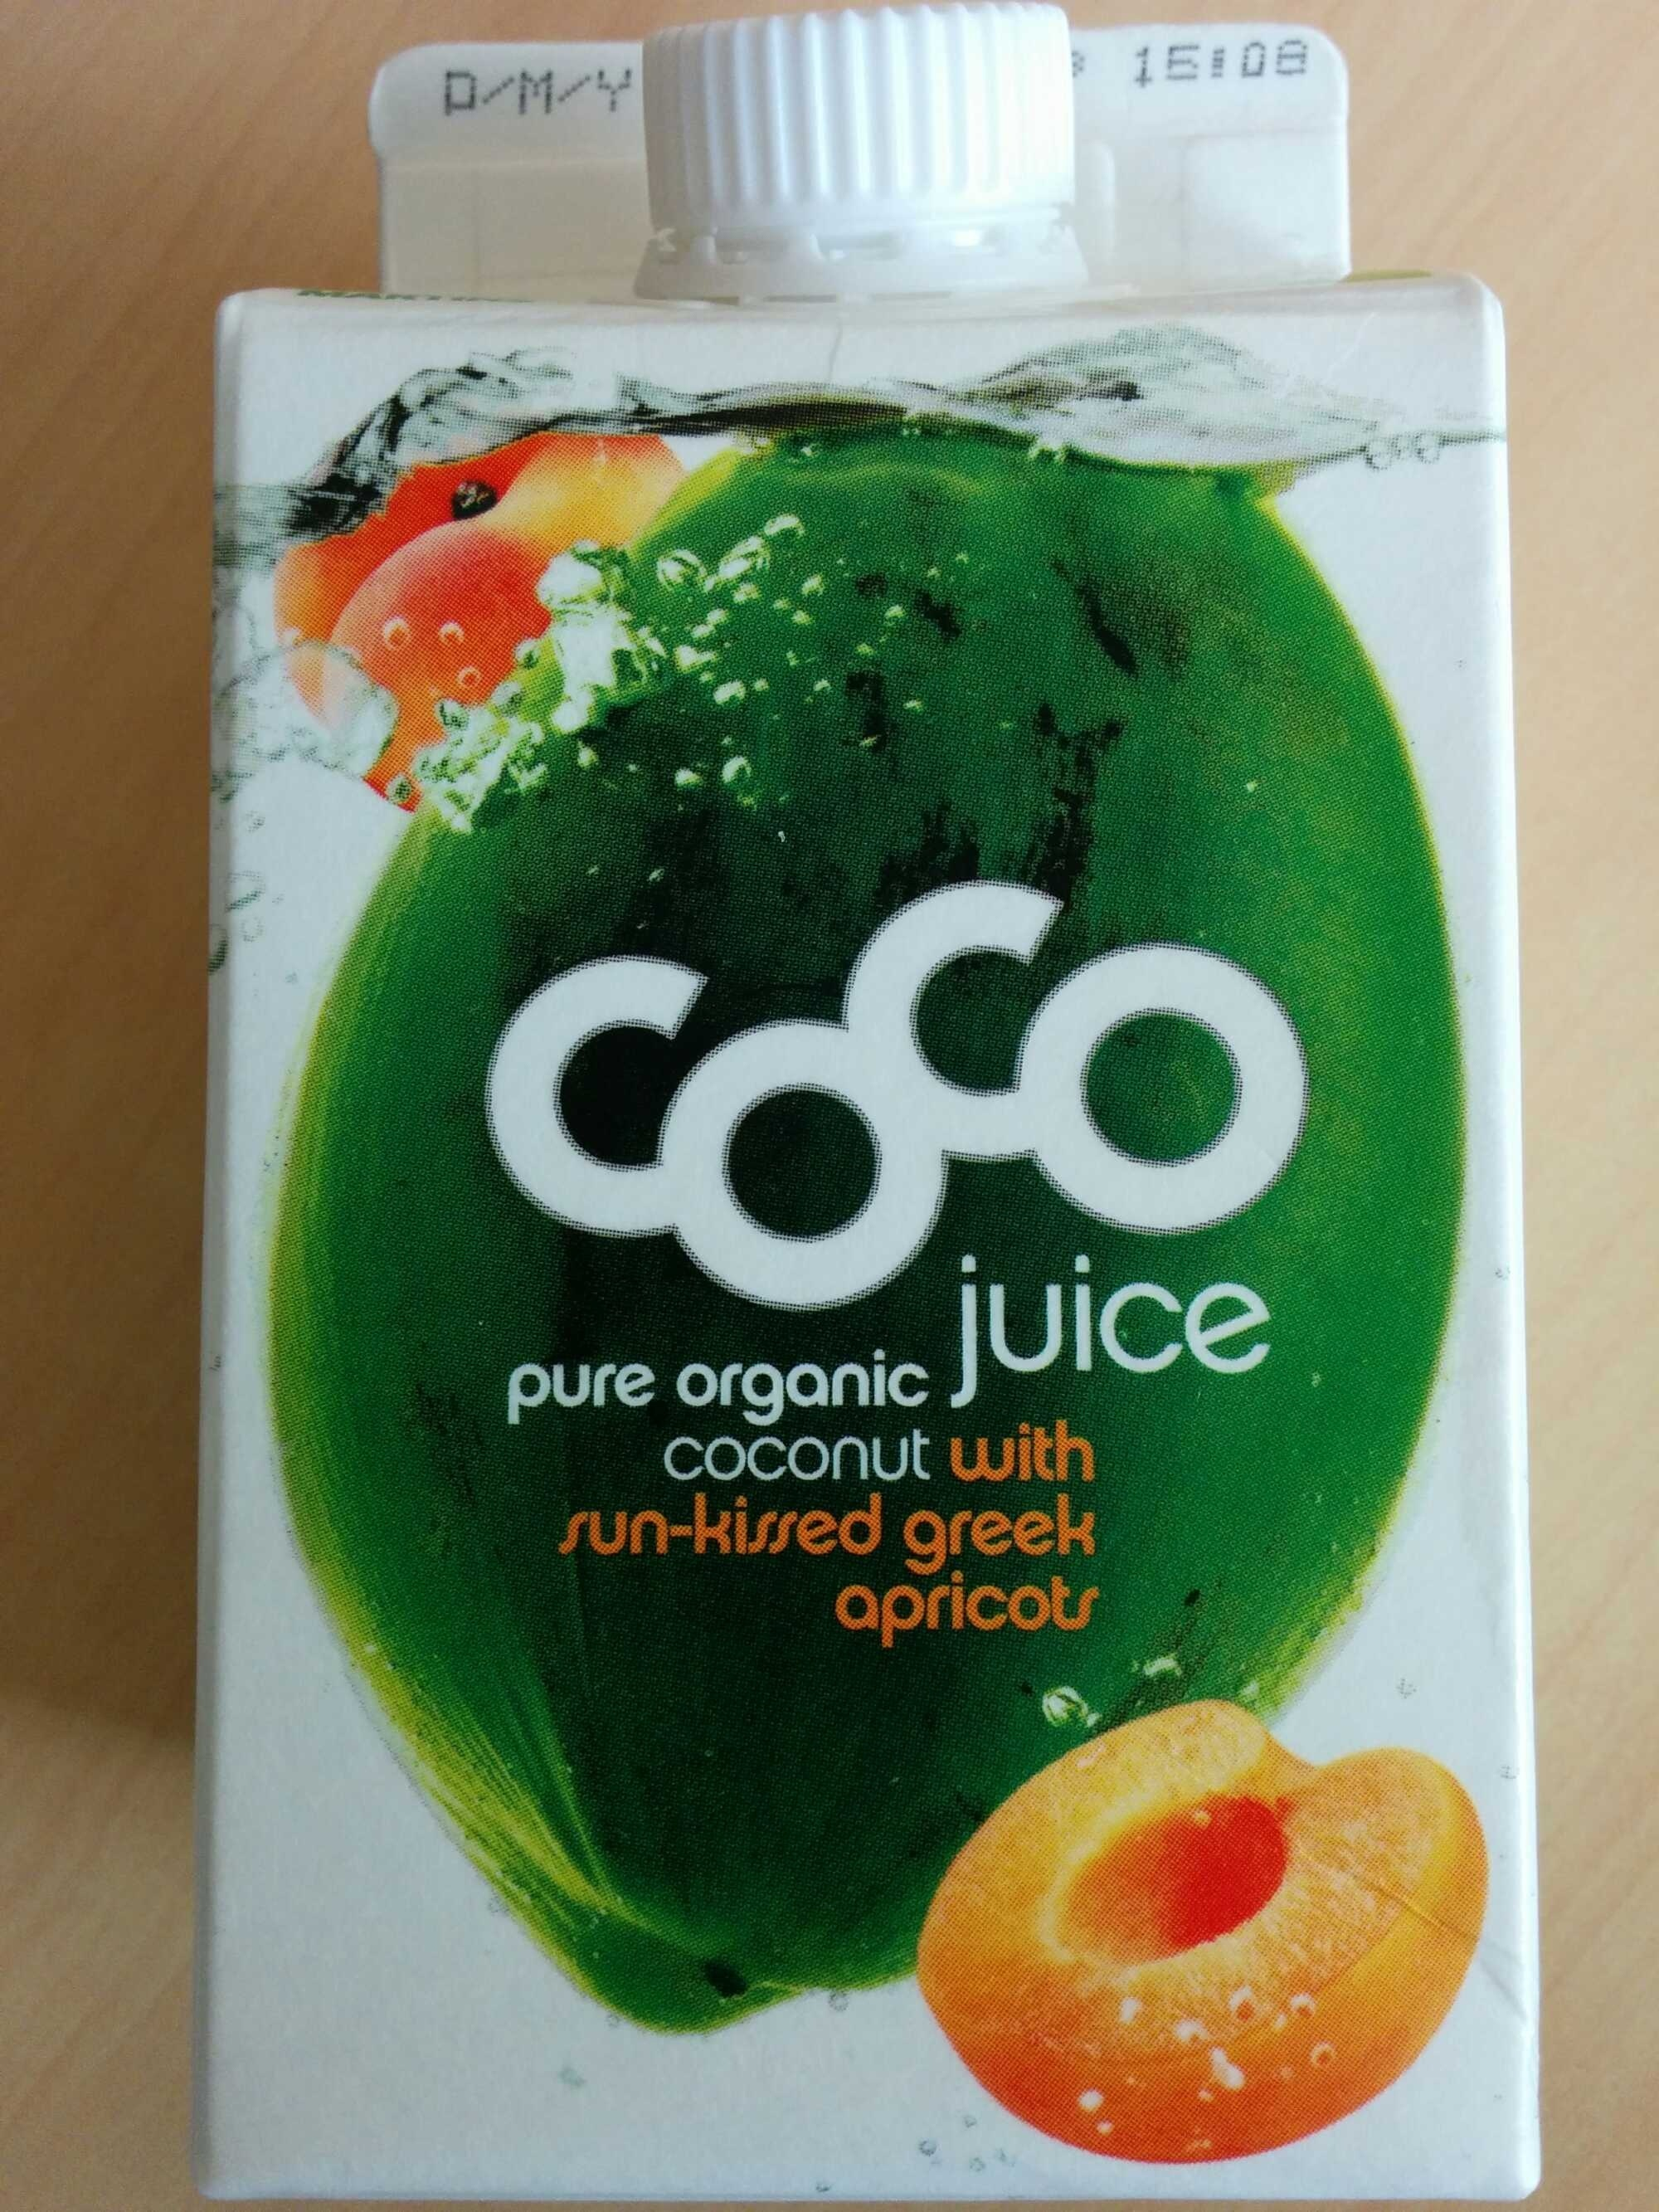 Coco juice pure organic coconut apricots - Product